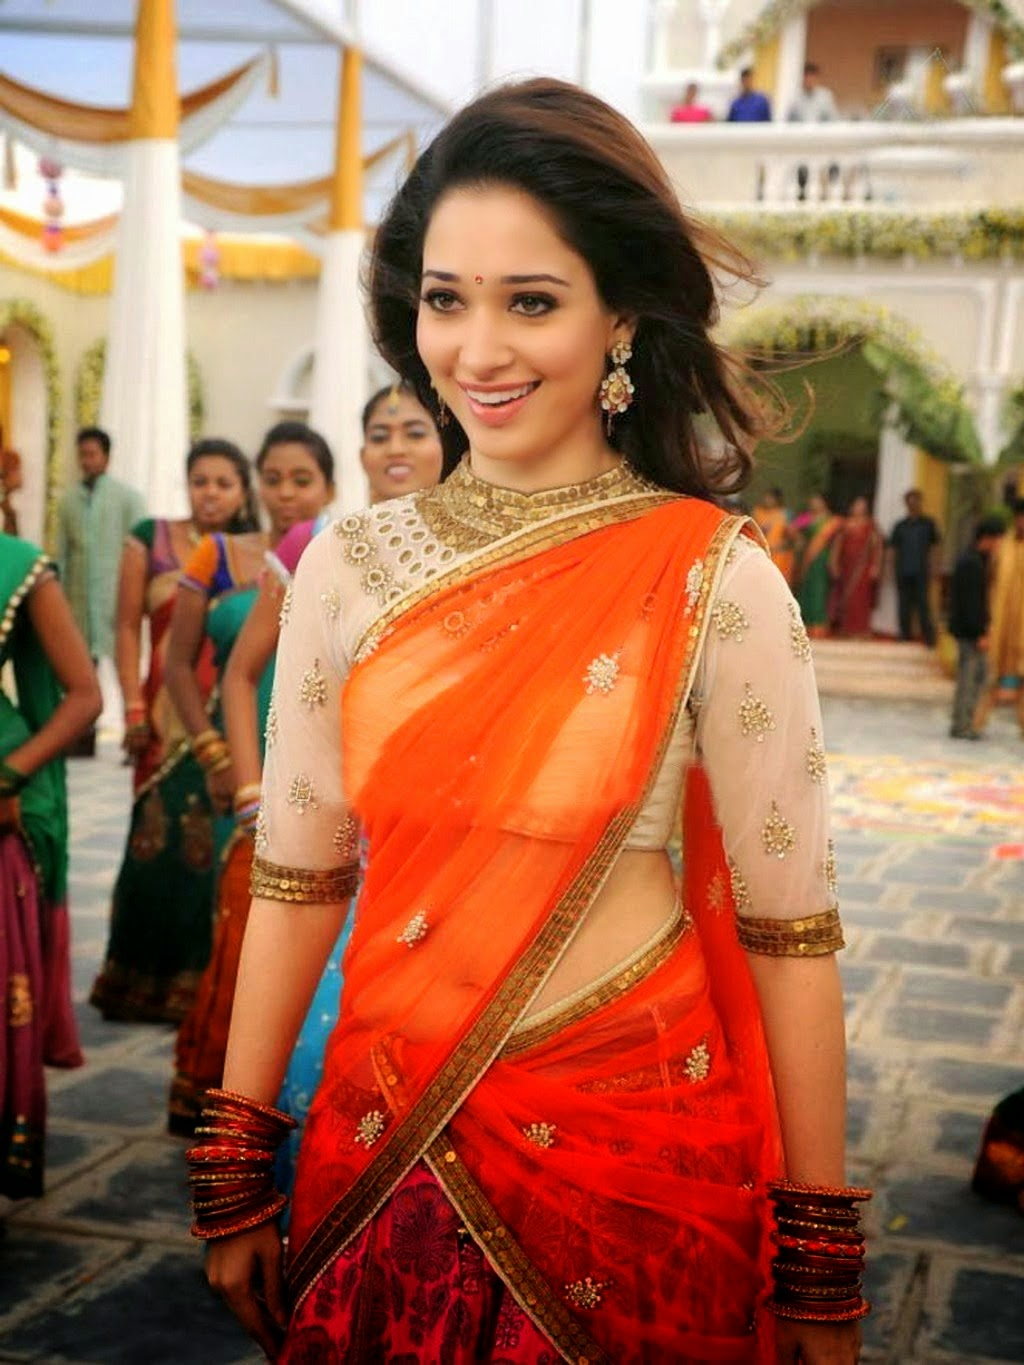 Tamanna bhatia hot pictures blue dress mobile wallpaper